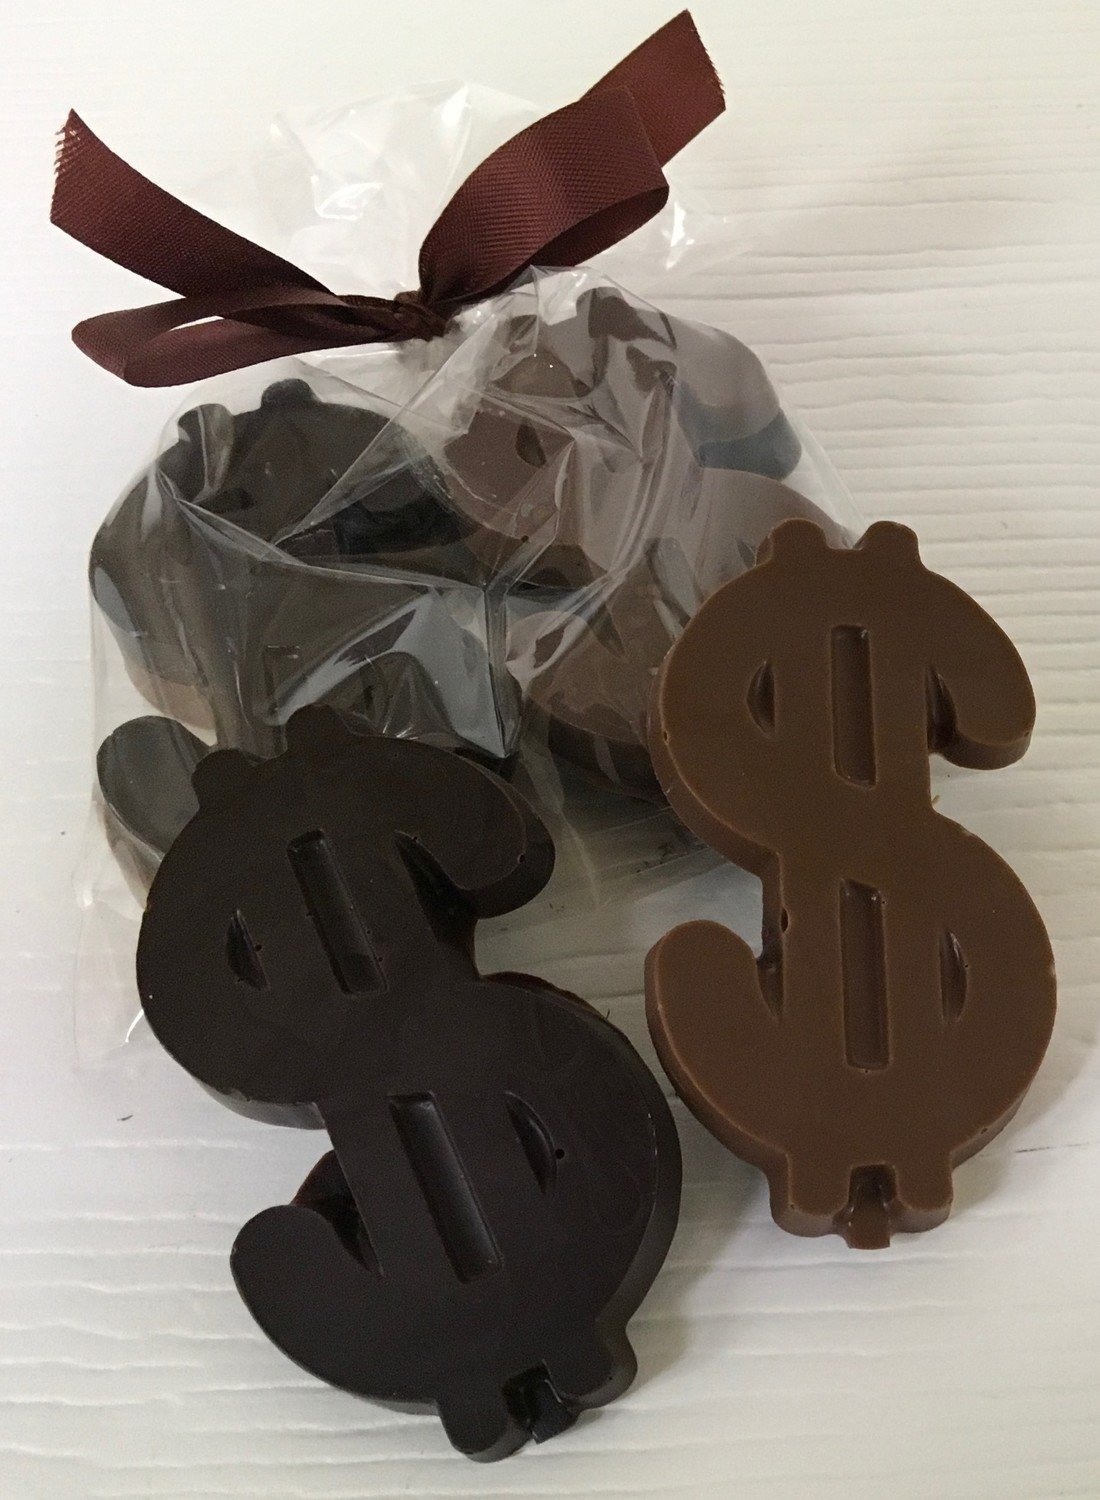 "10 Small Chocolate Dollar Signs Bagged w/ Ribbon.  2 in a Bag. 1 MK 1 DK Each dollar sign is 3"" x 1 1/2"" Choose your Color Ribbon"